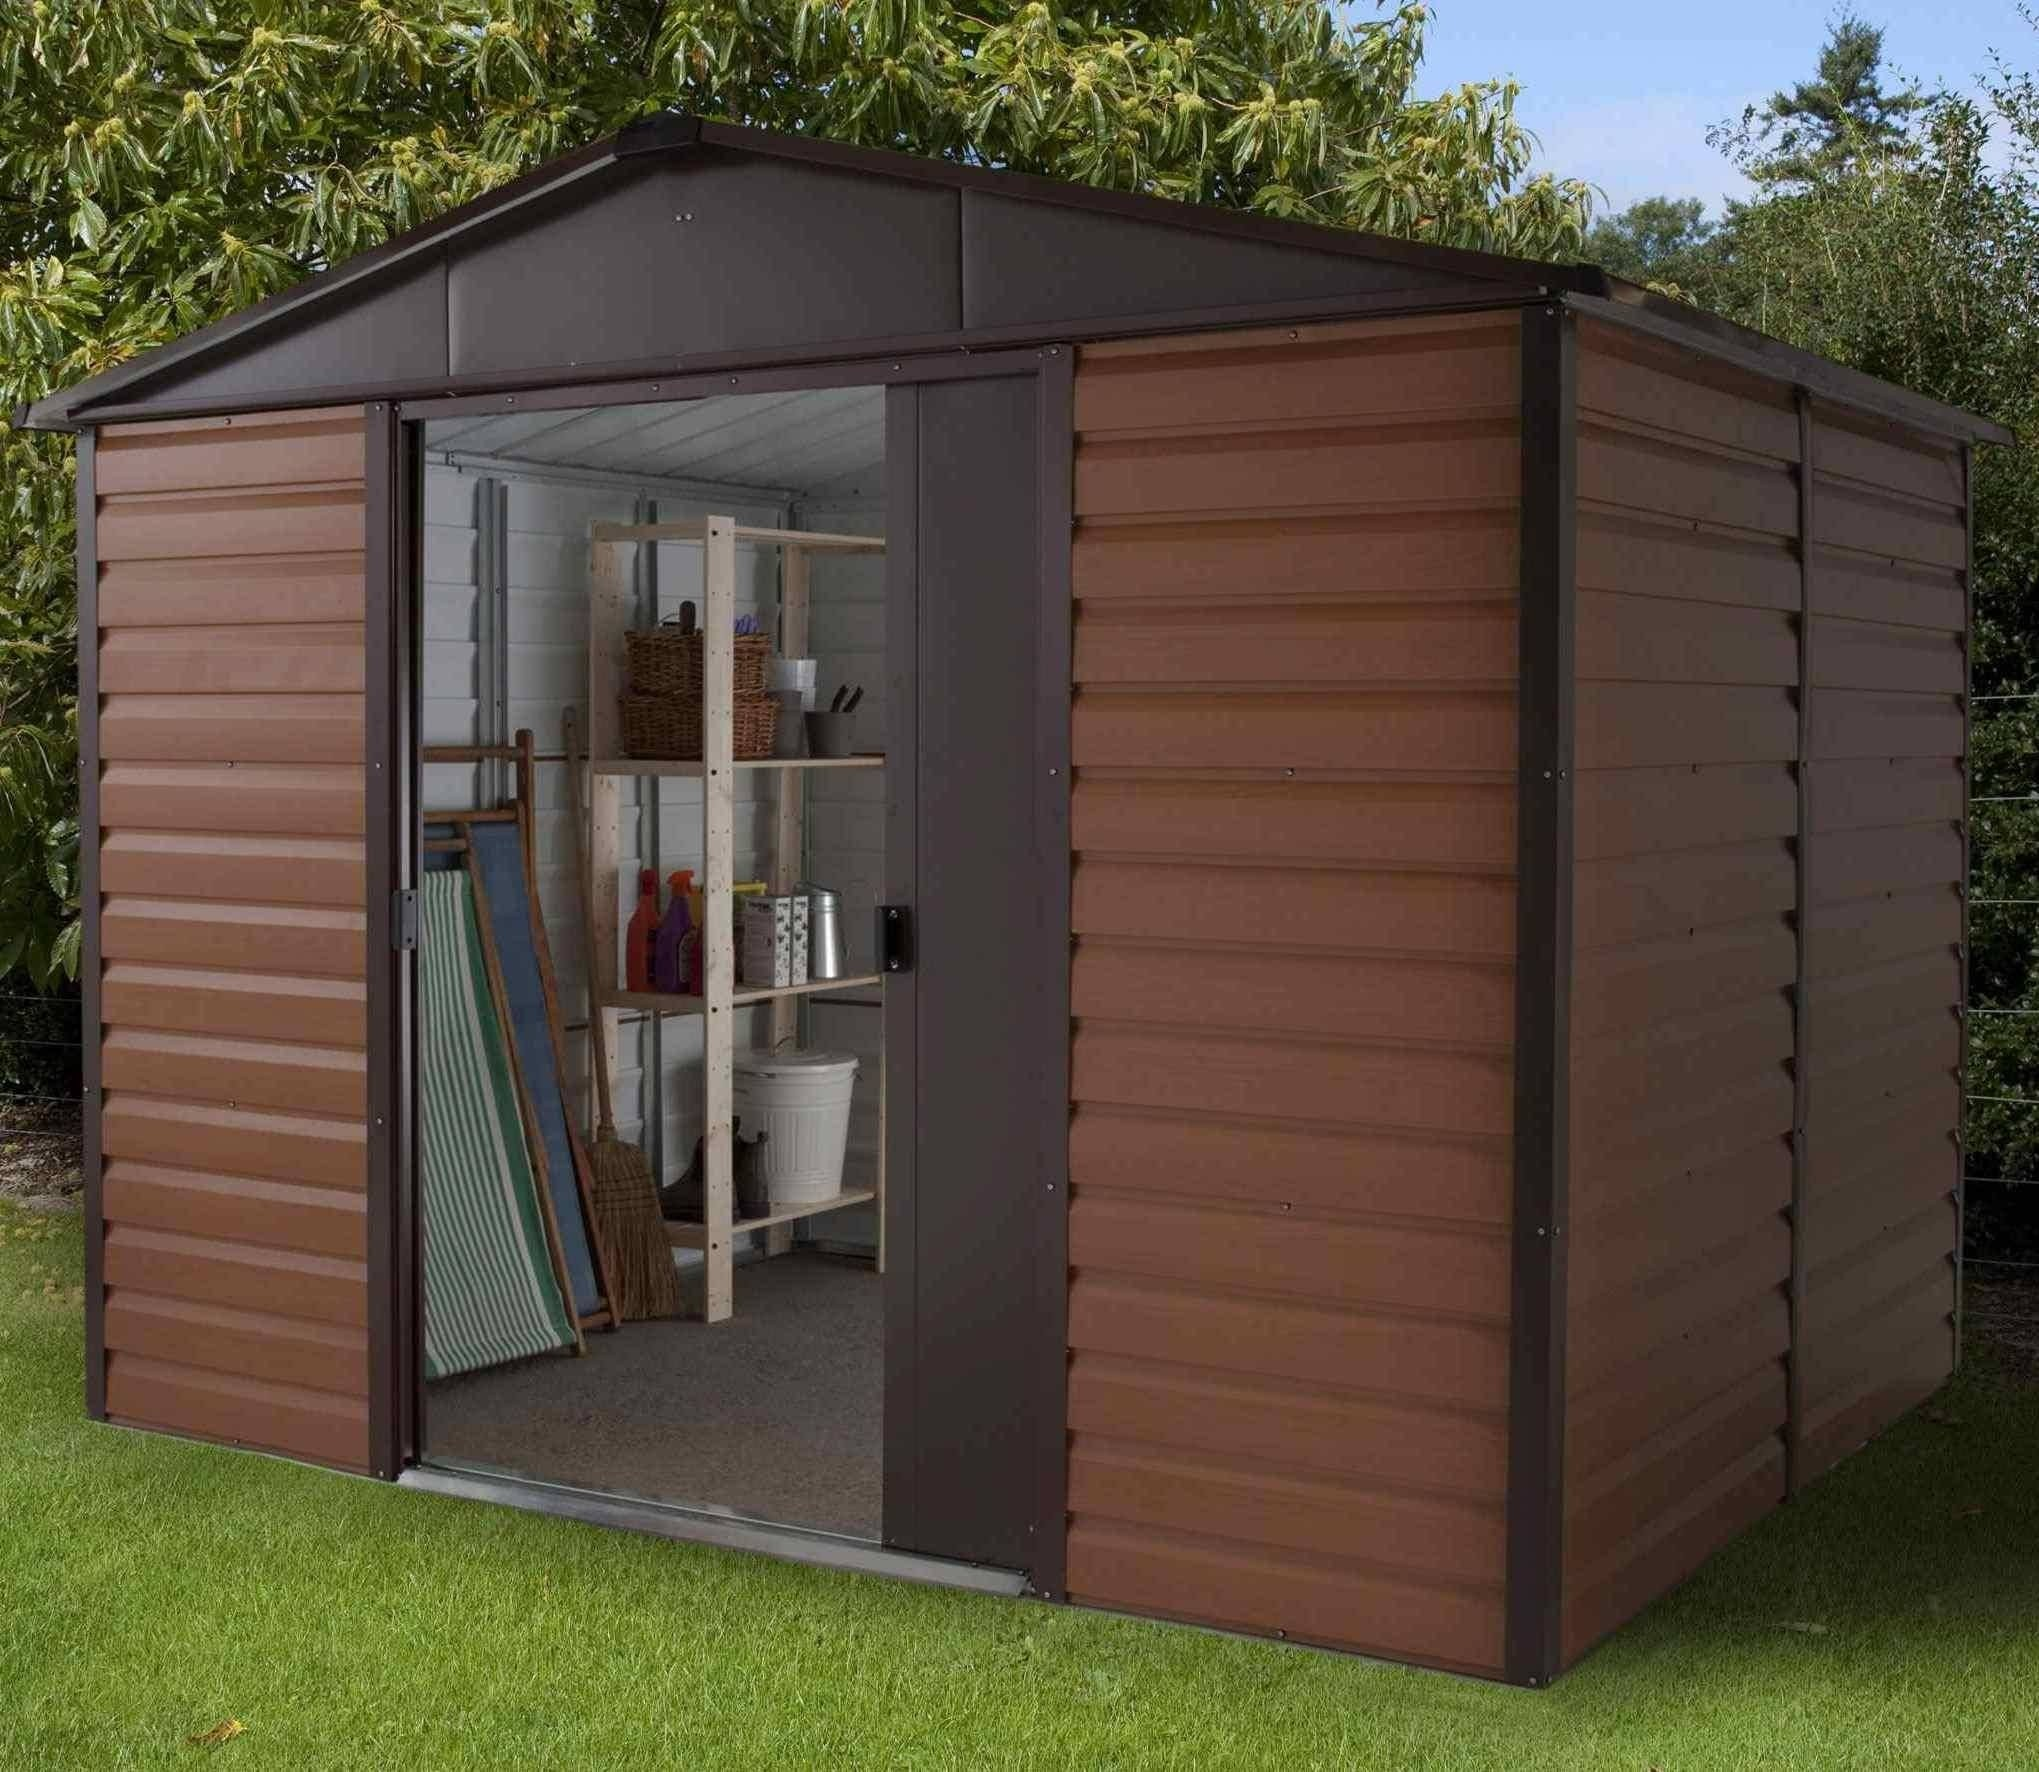 108wgl yardmaster woodgrain metal garden shed for Garden shed 10x10